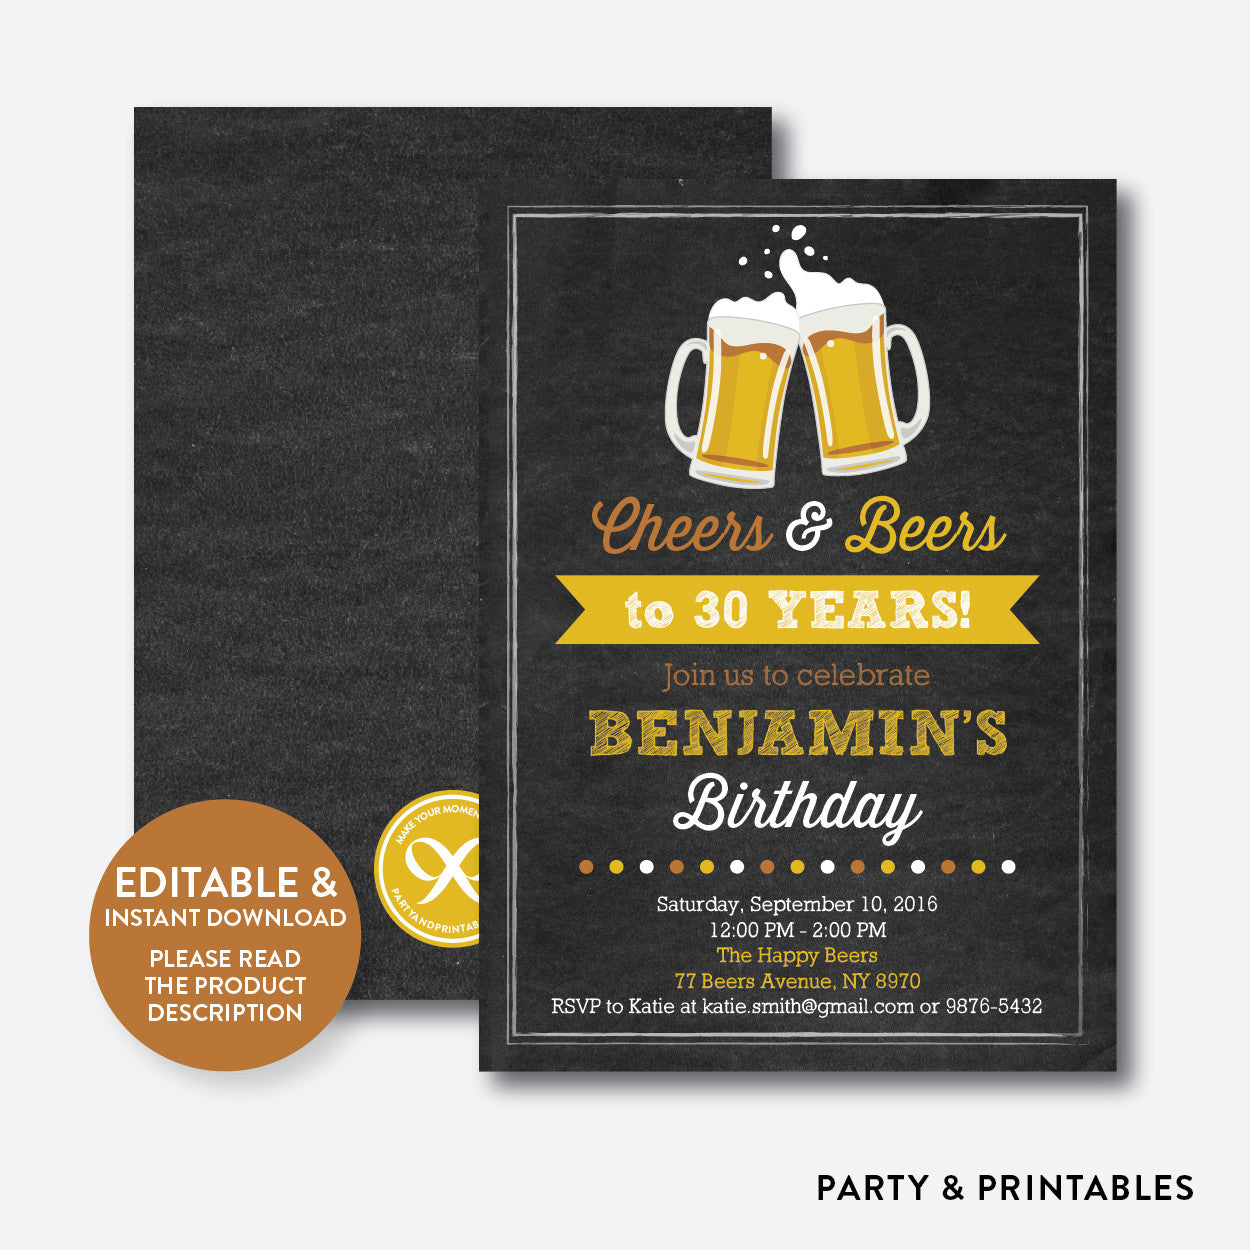 Cheers And Beers Adult Birthday Invitation Editable Instant - Editable birthday invitations for adults